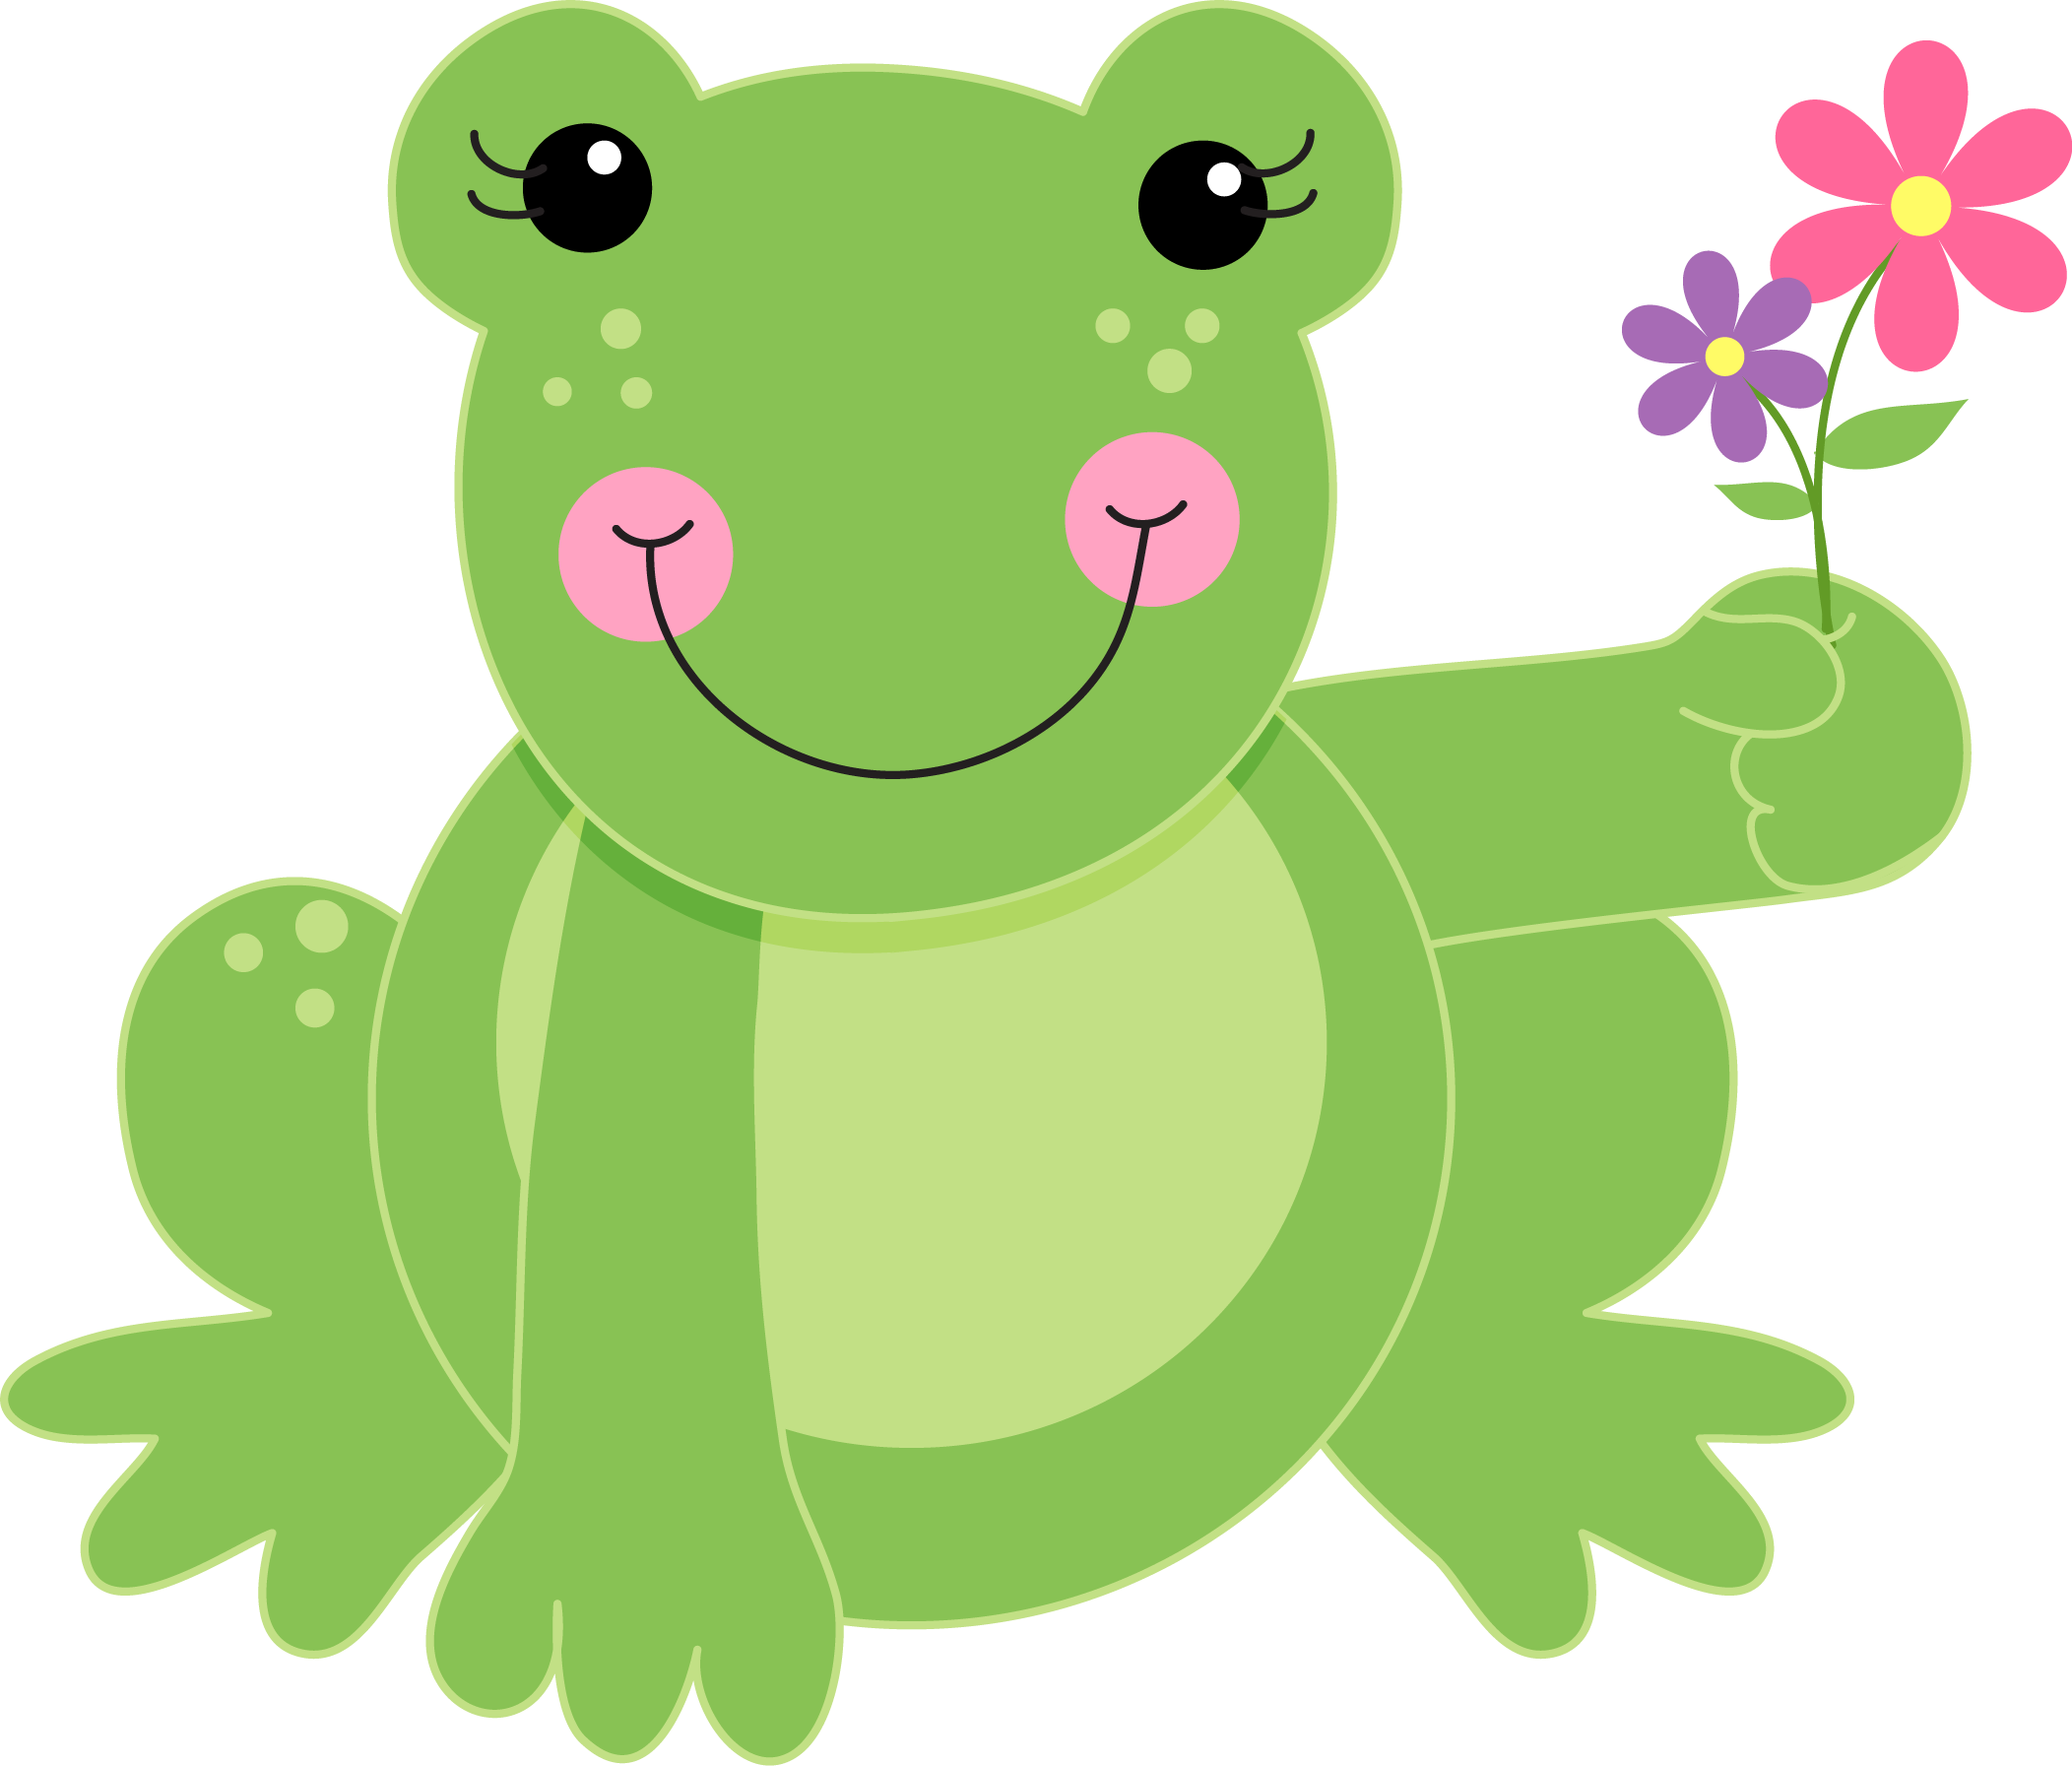 Amphibians drawing small. Collection of free amphibia